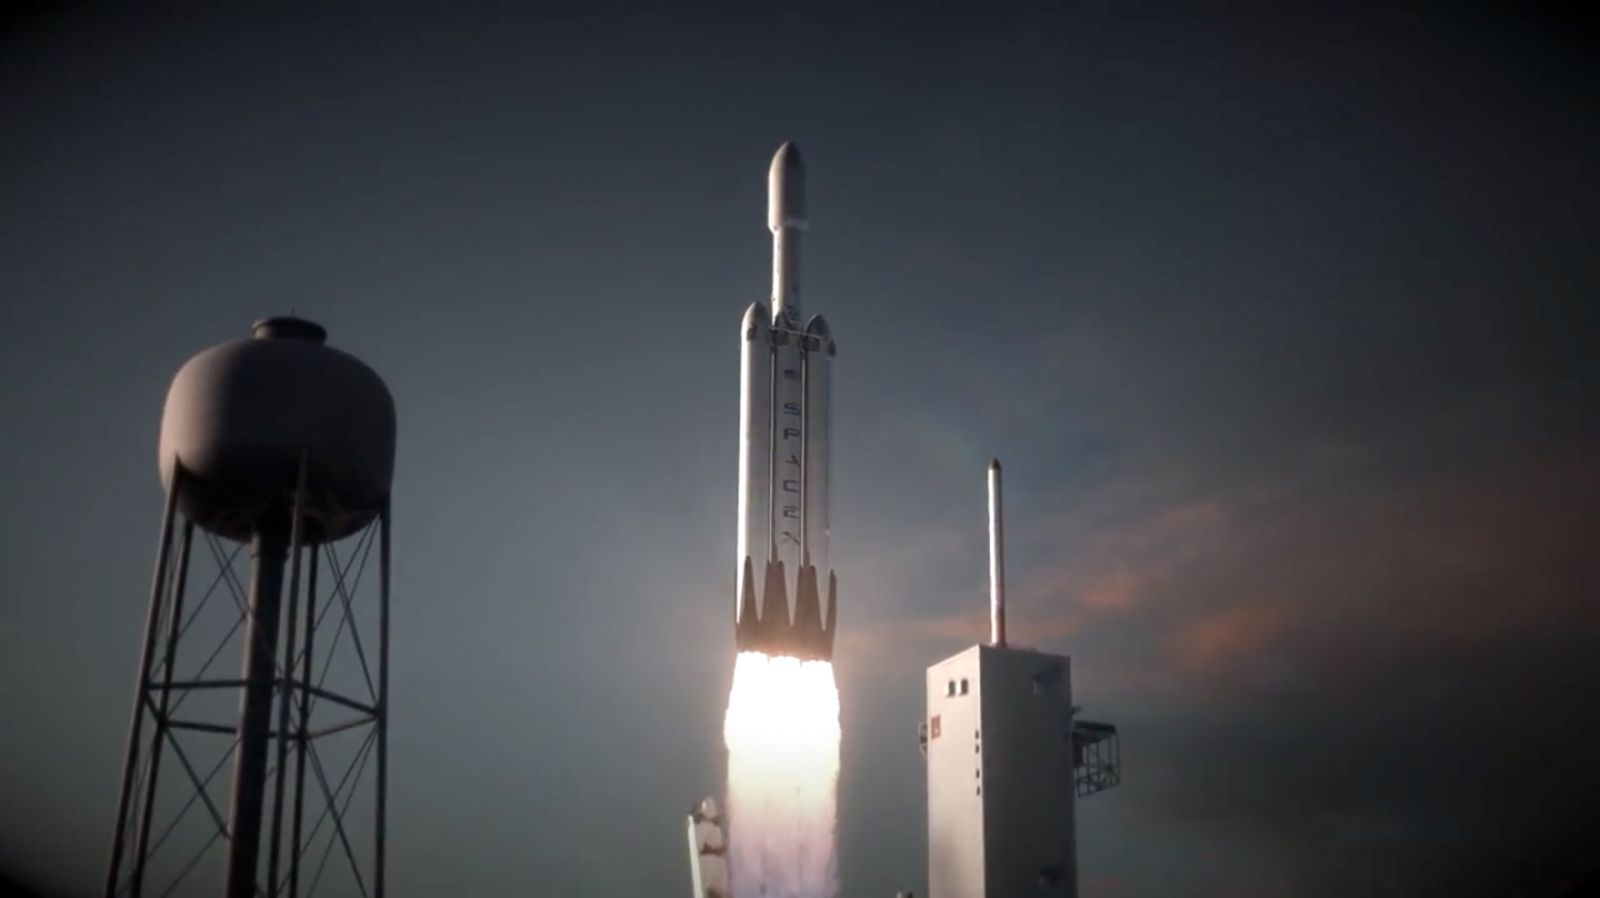 spacex falcon heavy launch - photo #10